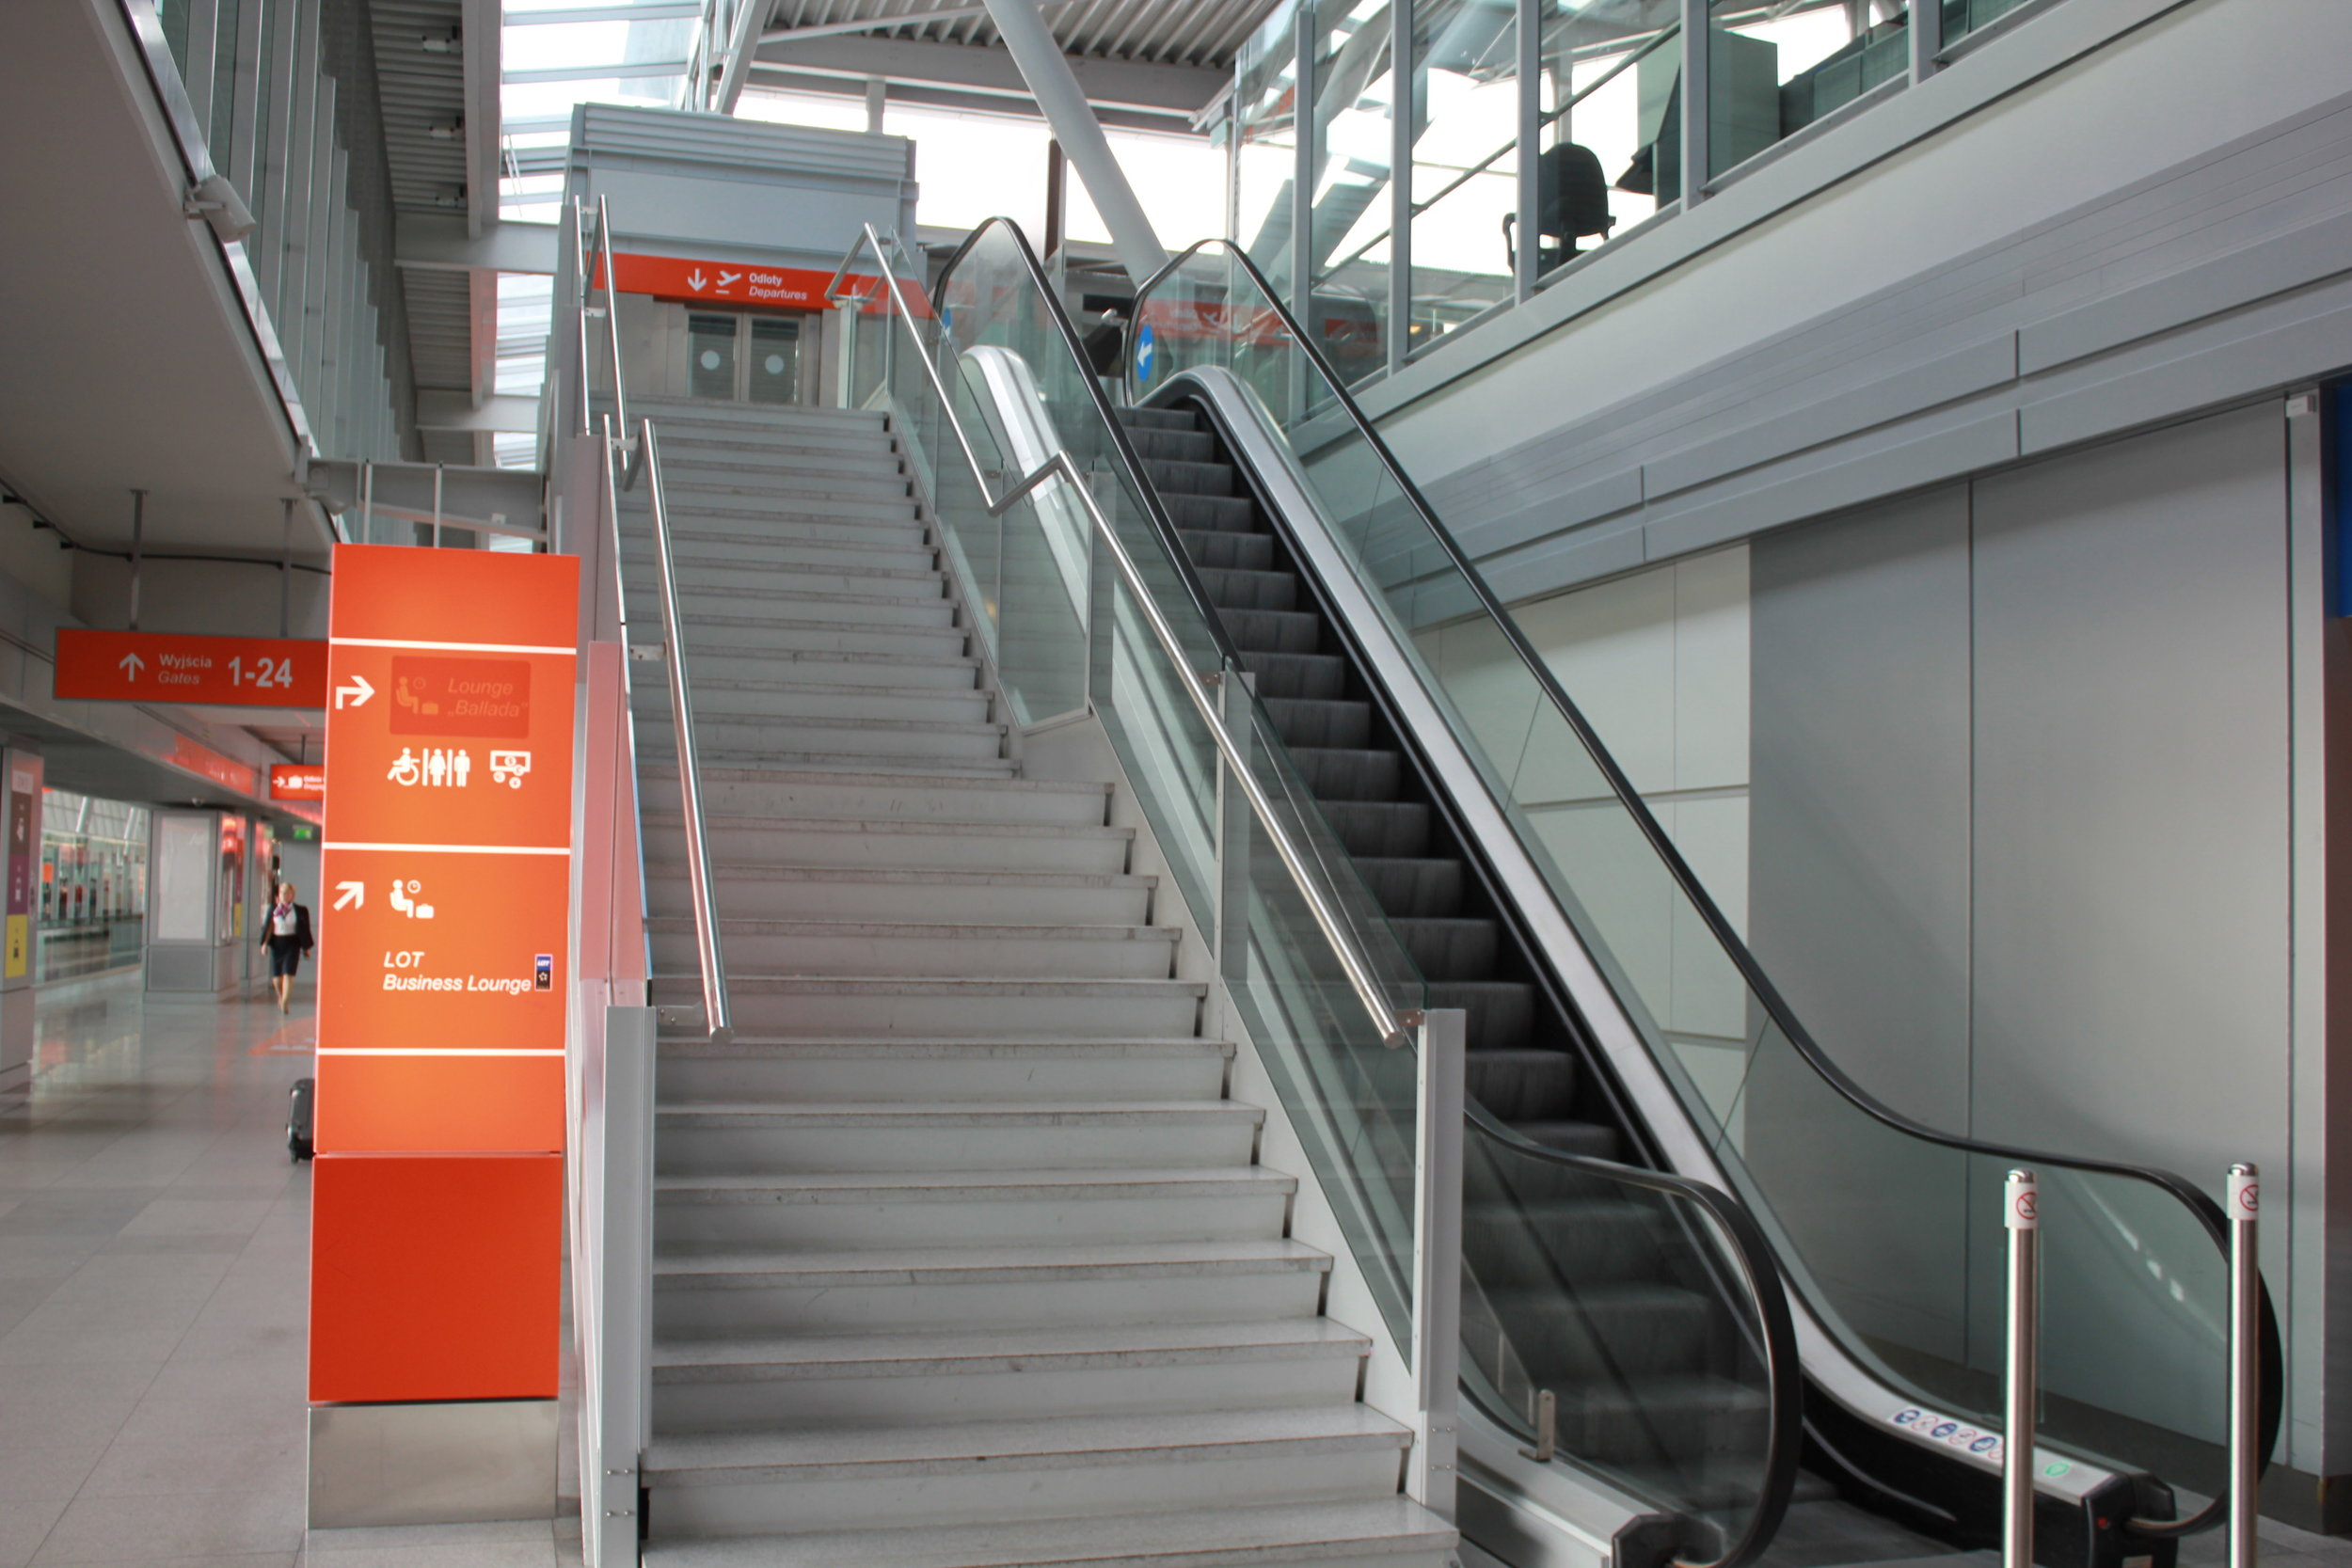 LOT Business Lounge Warsaw – Stairs at entrance